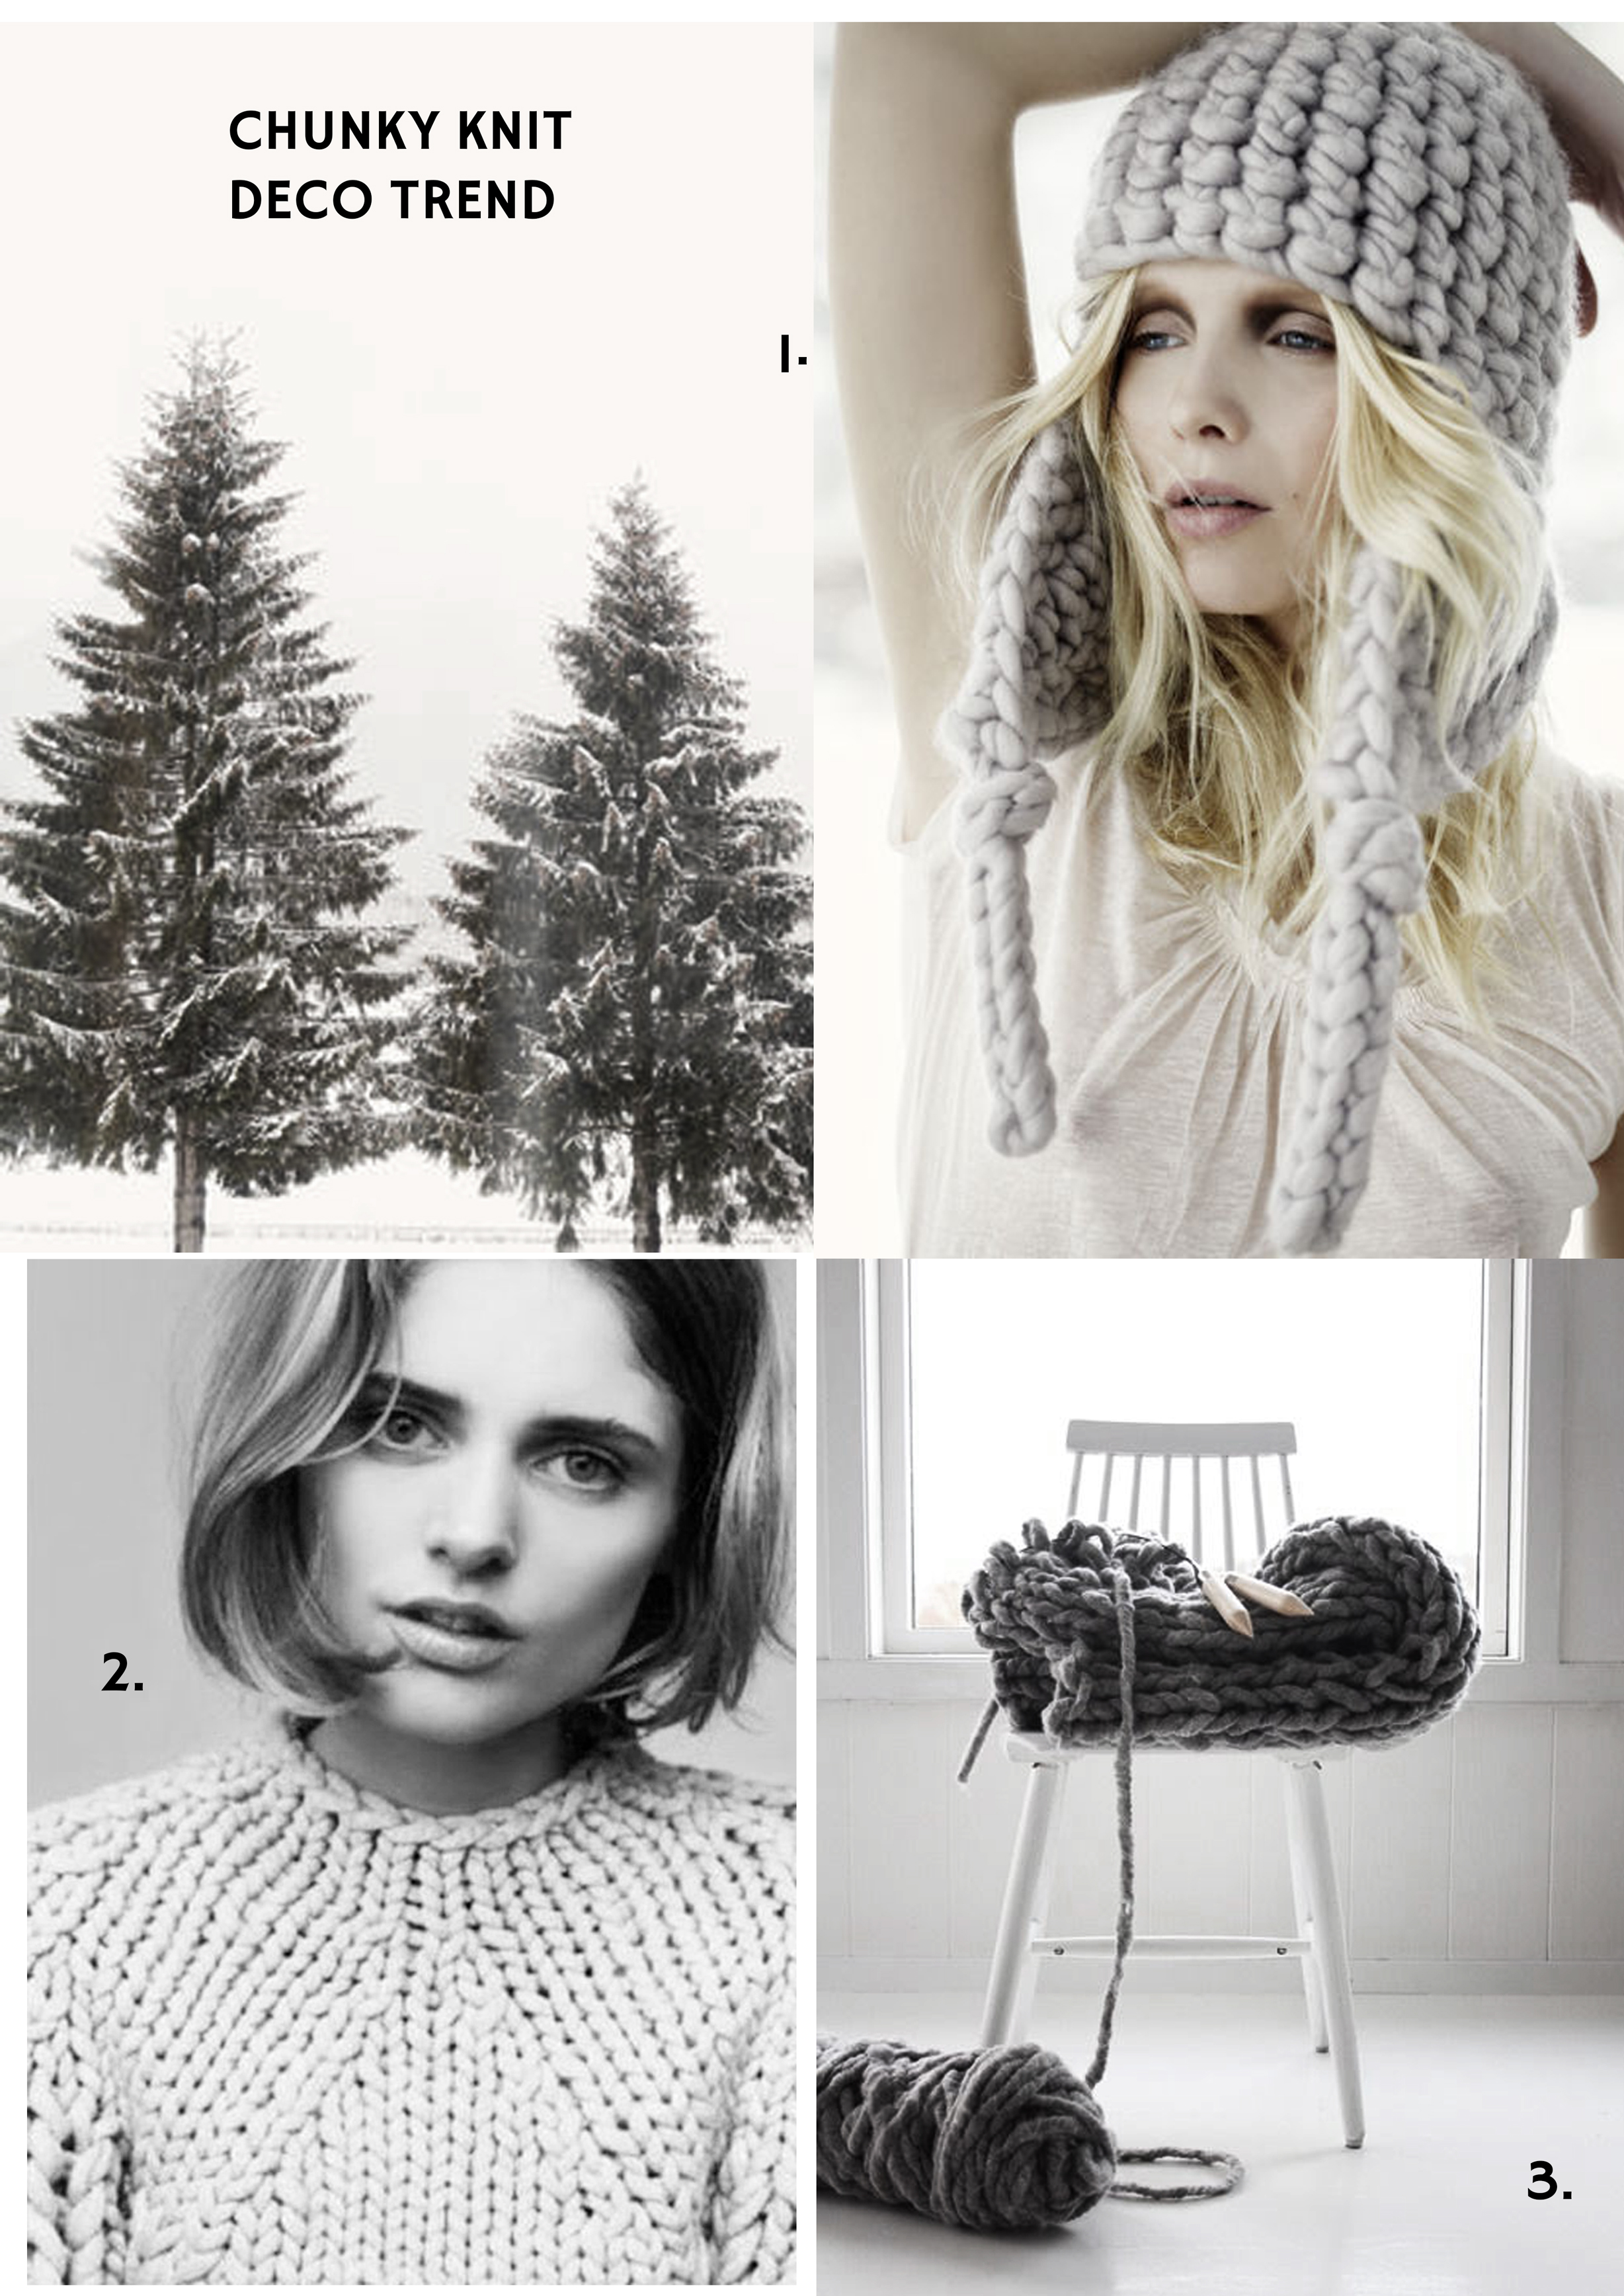 Interior Trend - Chunky Knit